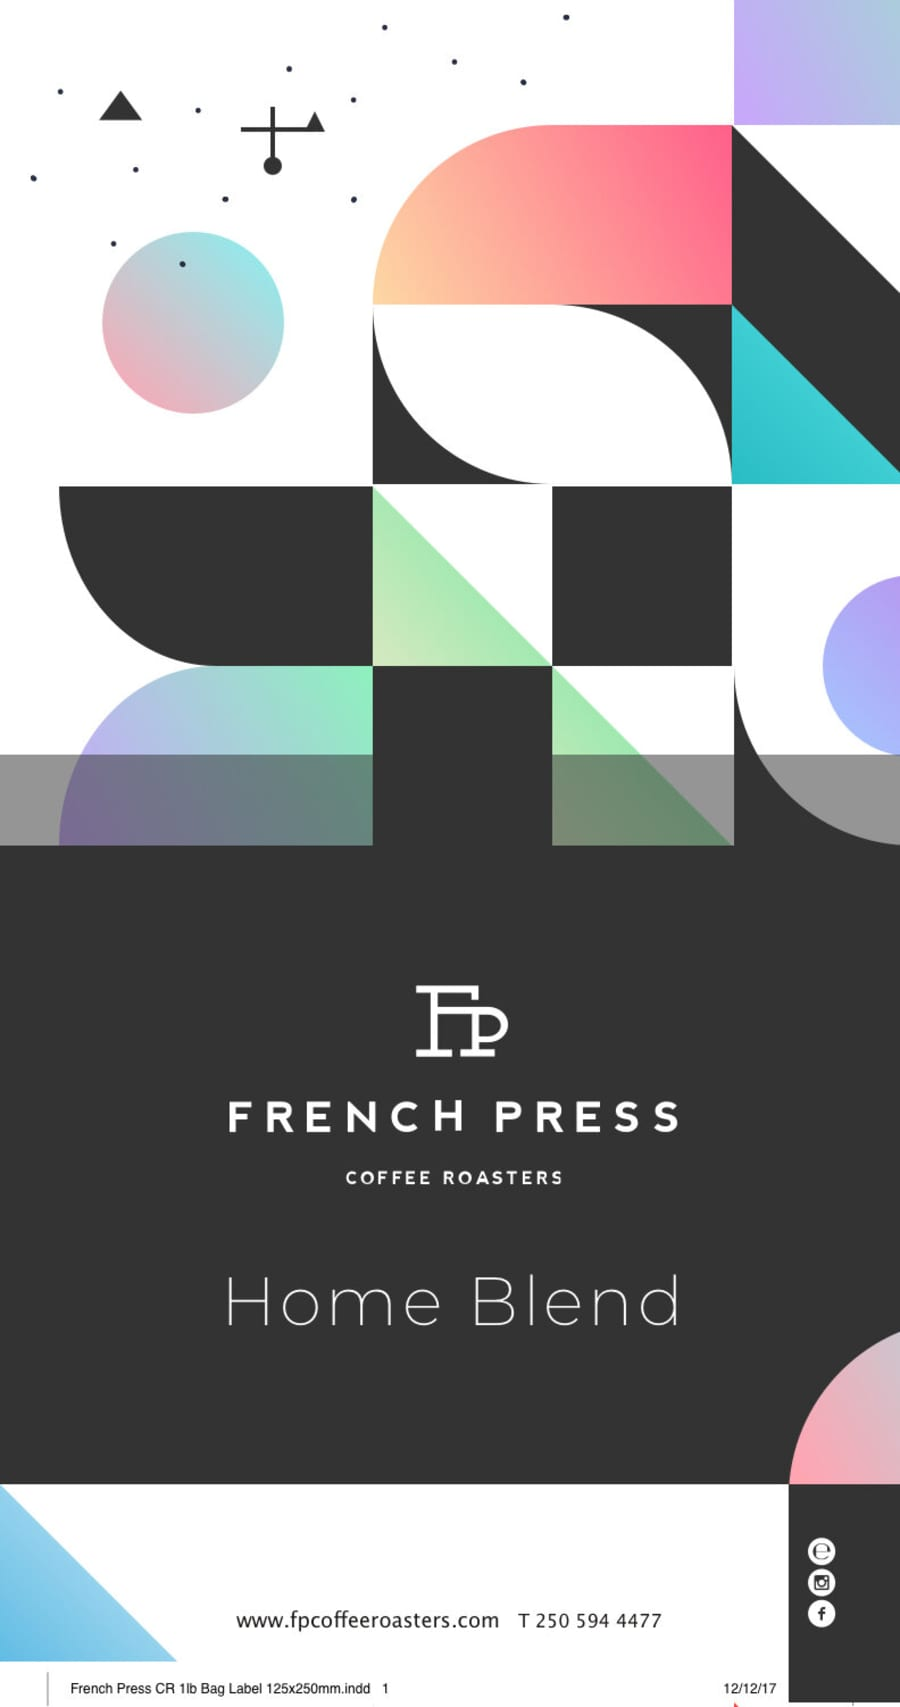 Home Blend | French Press Coffee Roasters